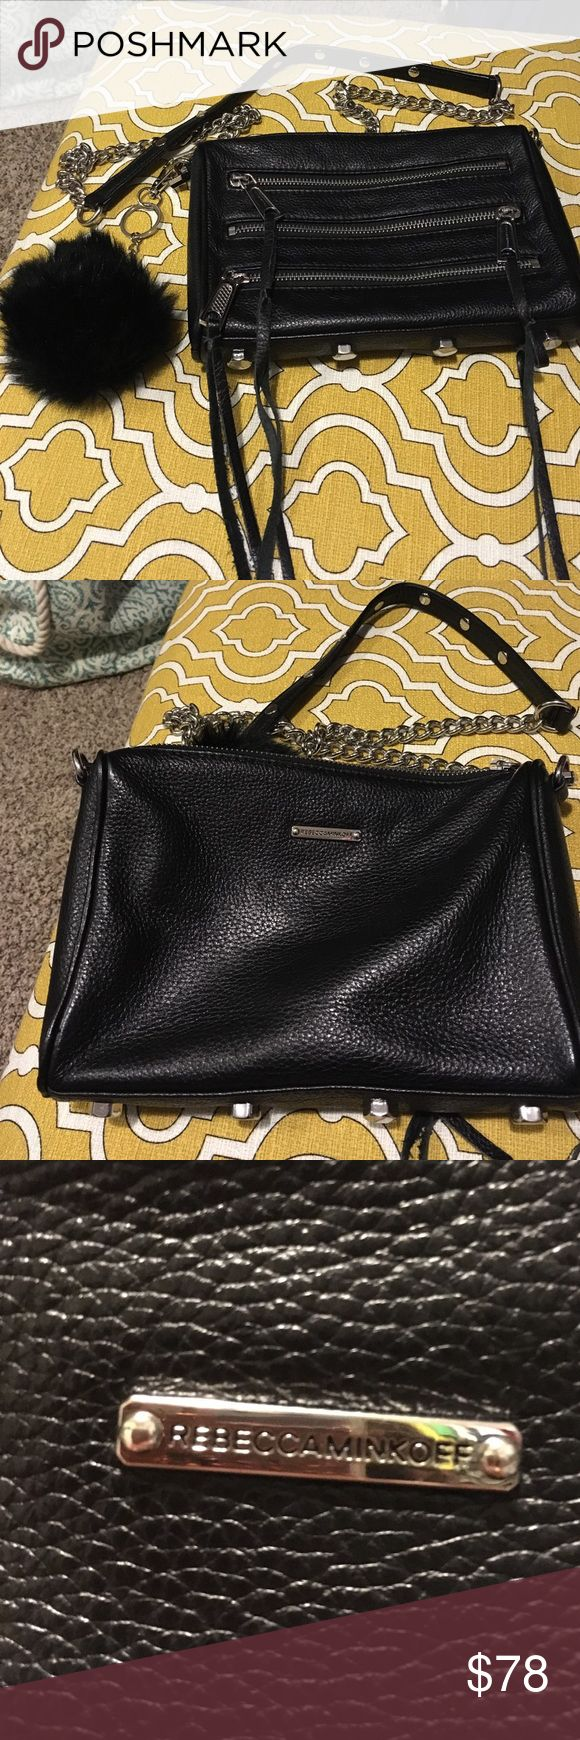 Rebecca Minkoff Purse Great condition!.. super cute purse with the leather fringe on zippers and fur ball! Rebecca Minkoff Bags Crossbody Bags